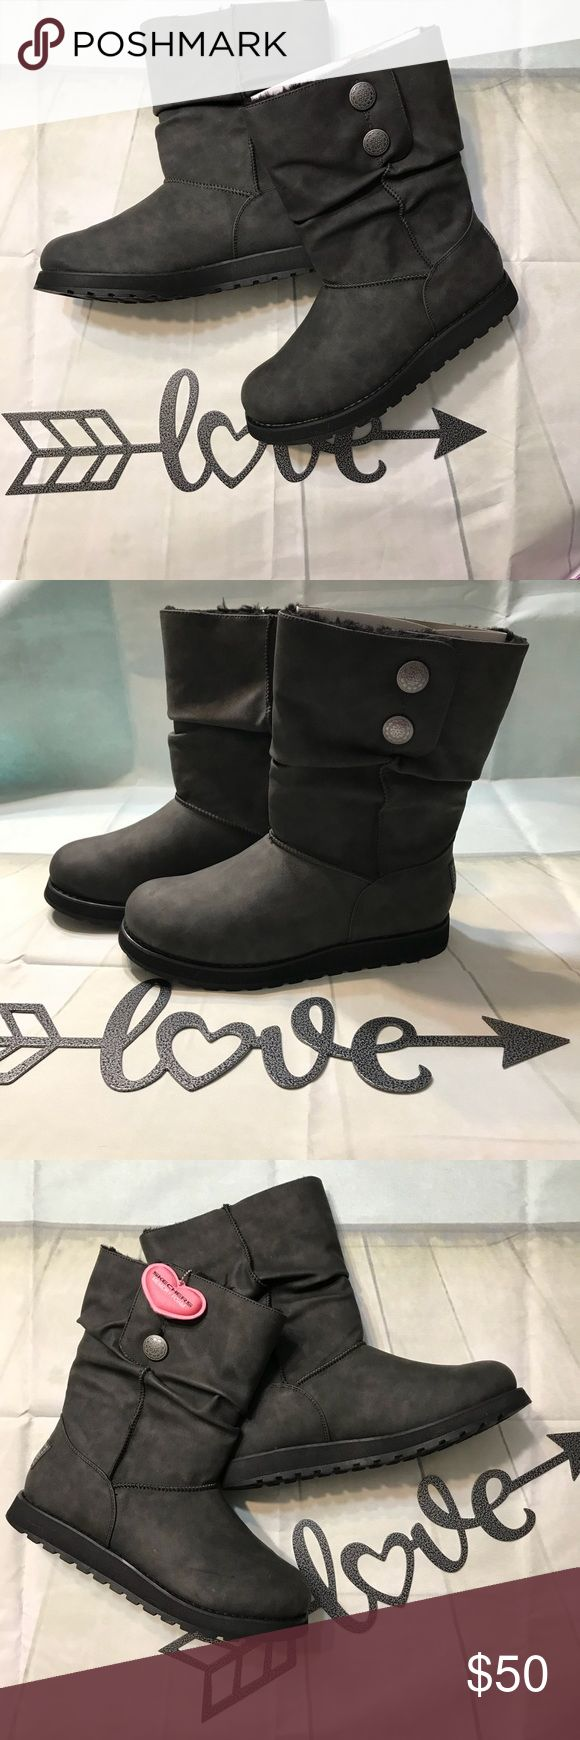 🖤Skechers Keepsakes Boots🖤 NWT Womens Skechers Keepsakes Leatherette Mid Calf Boot- size 8.5, Black Bought and never wore, still have cardboard insert & paper in them.   - - Last picture gives full description of boots- - Skechers Shoes Winter & Rain Boots #midcalfboots